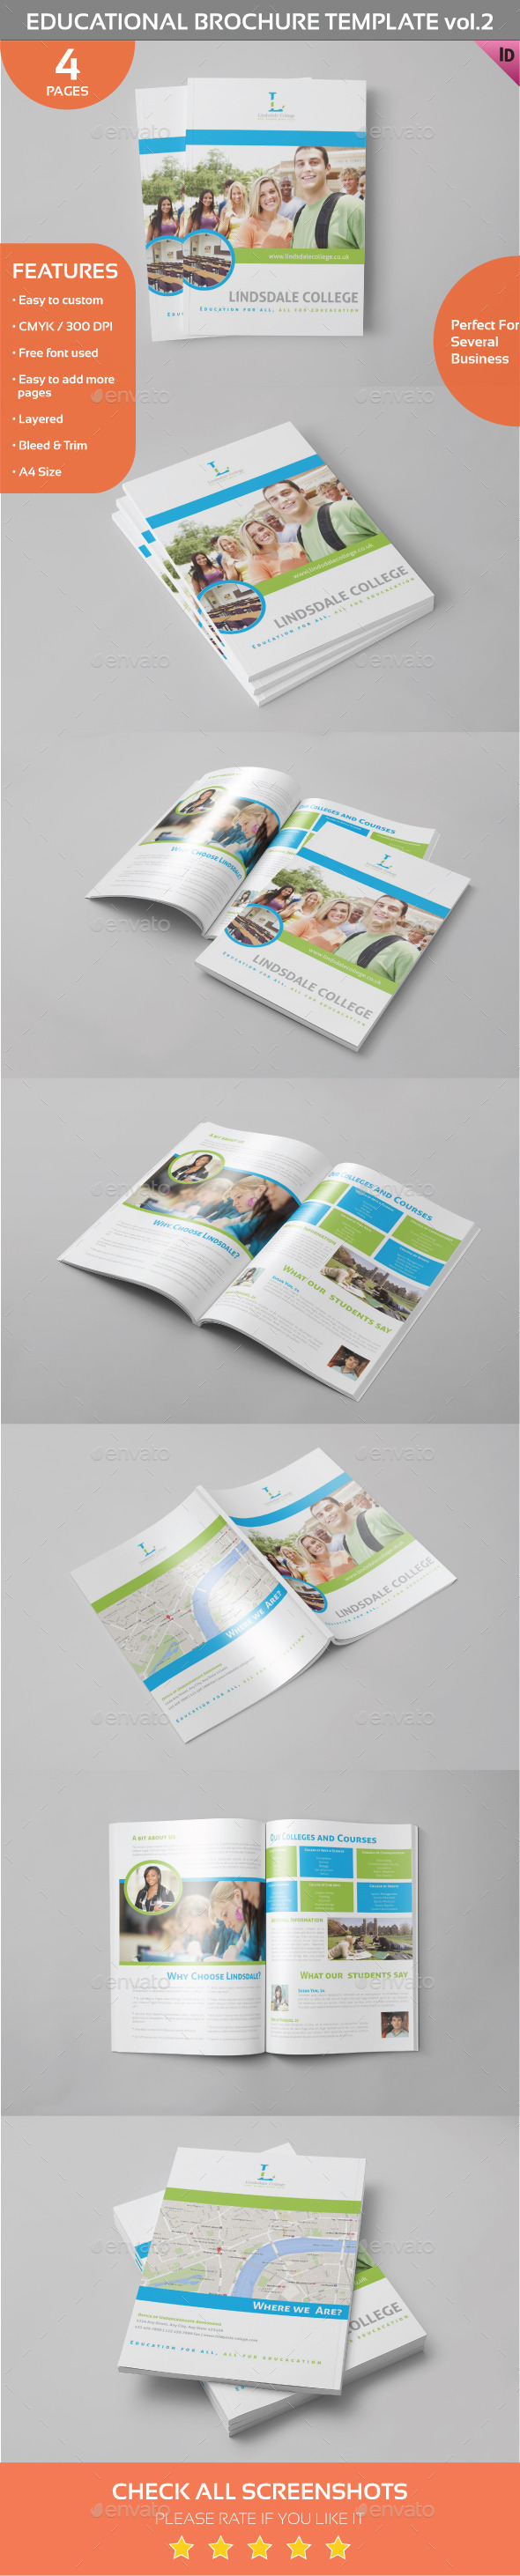 Educational Brochure Template Vol.2 - Informational Brochures